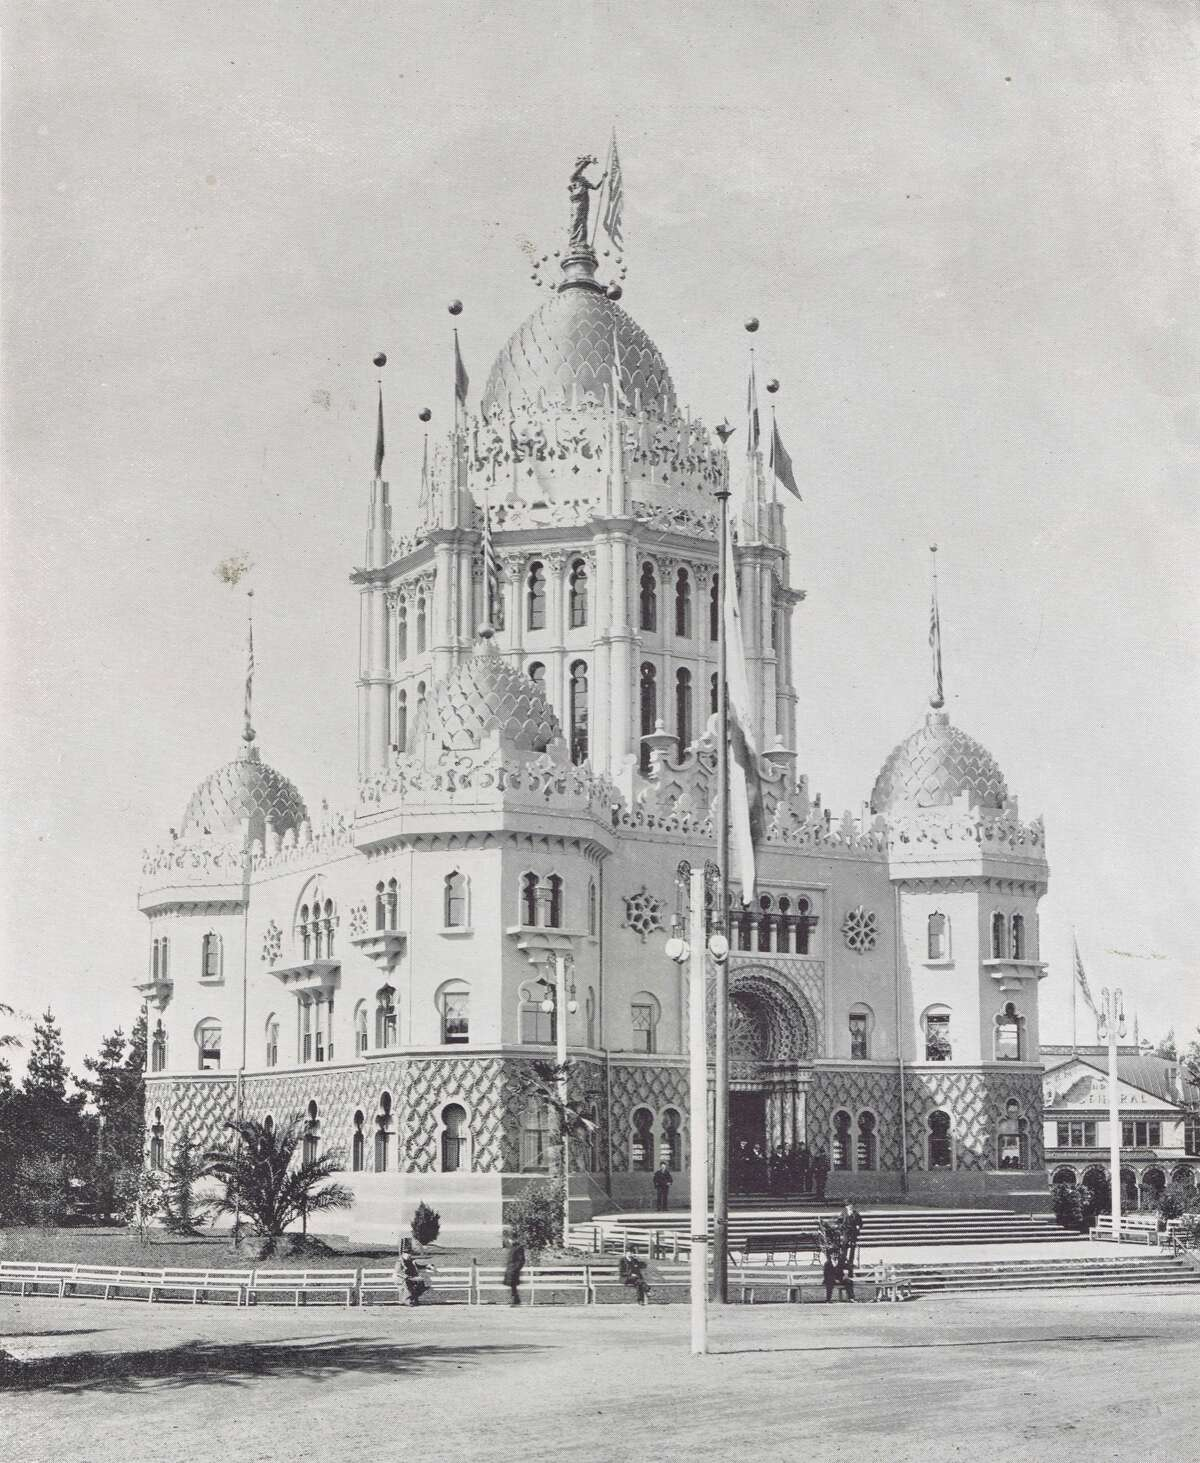 The Administration Building - Created in East Indian style architecture. Built of wood and fireproof staff at only a cost of $31,000. It contained press and telegraph departments, housing for executives and financial offices. The San Francisco Midwinter Fair of 1894, in Golden Gate Park, from the collection of Bob Bragman